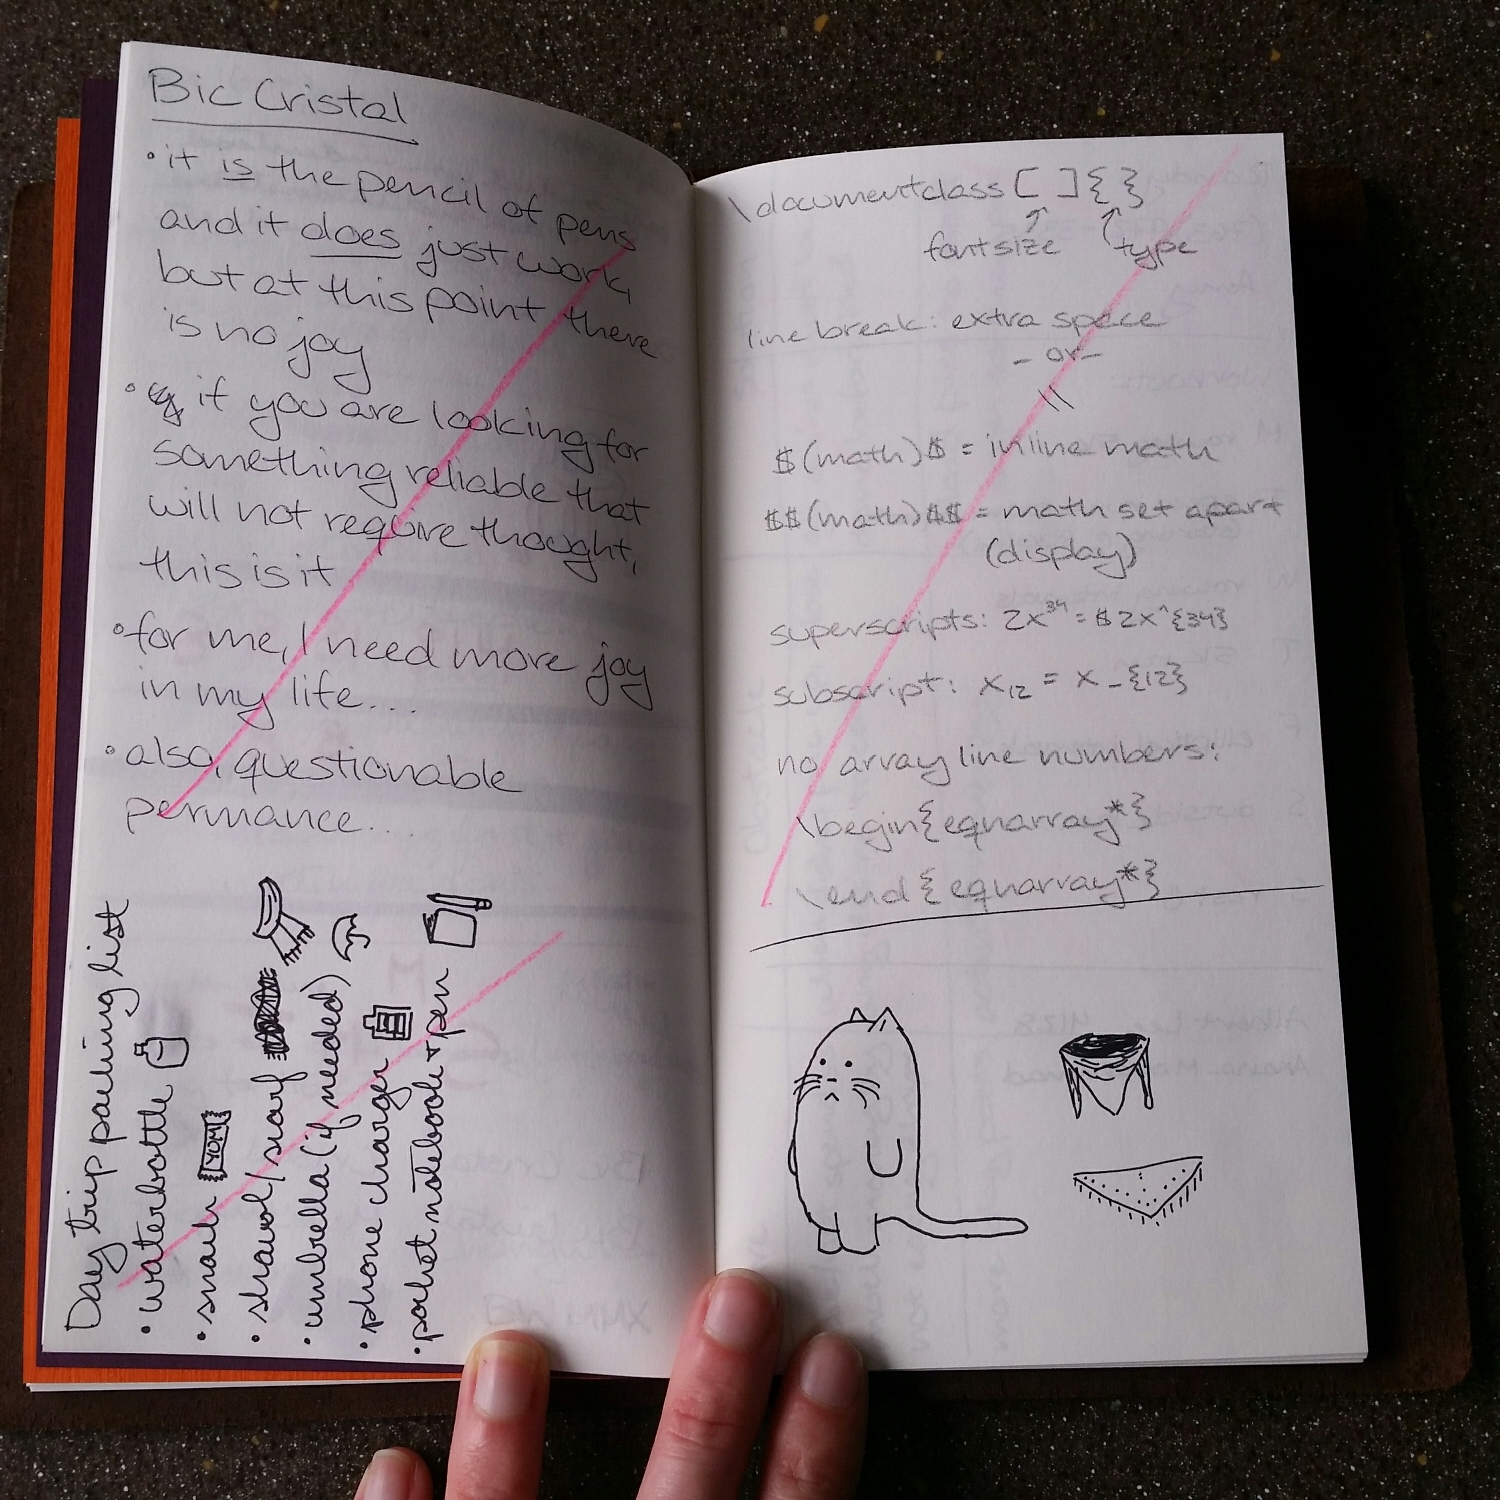 A page in my junk notebook that has no active material